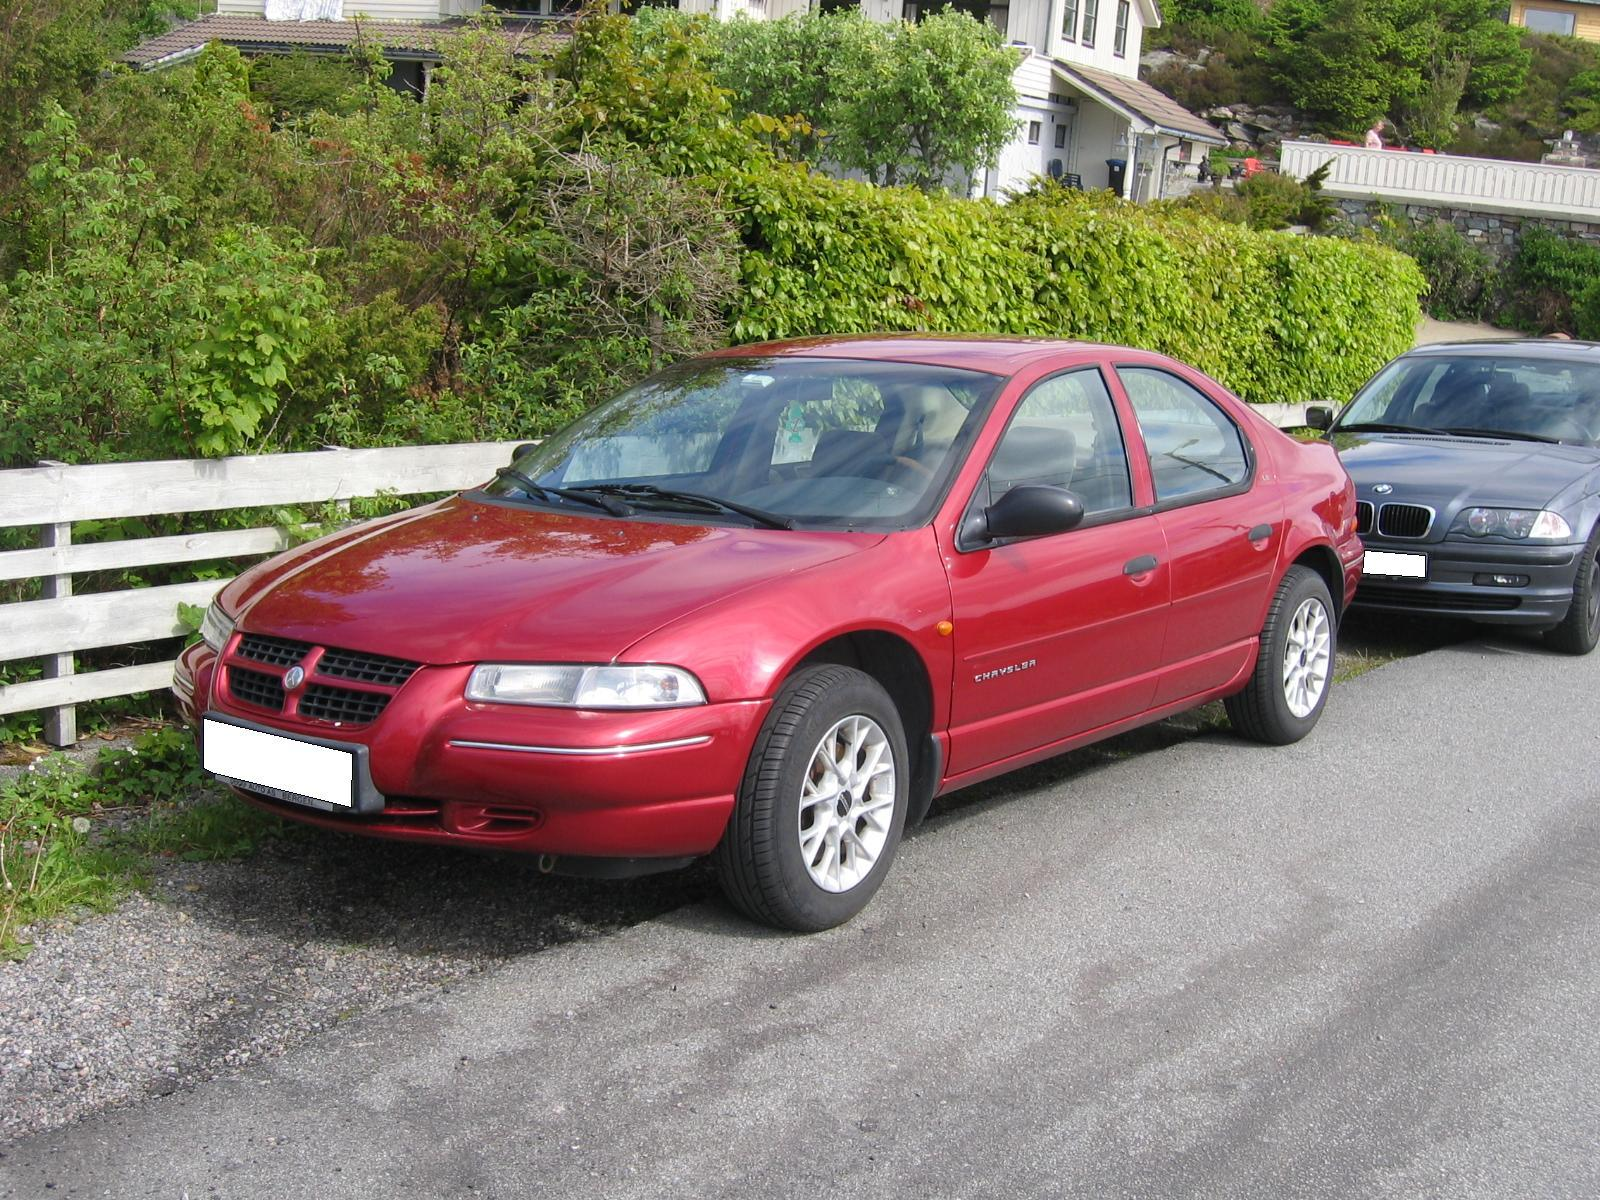 Chrysler Cirrus red #3